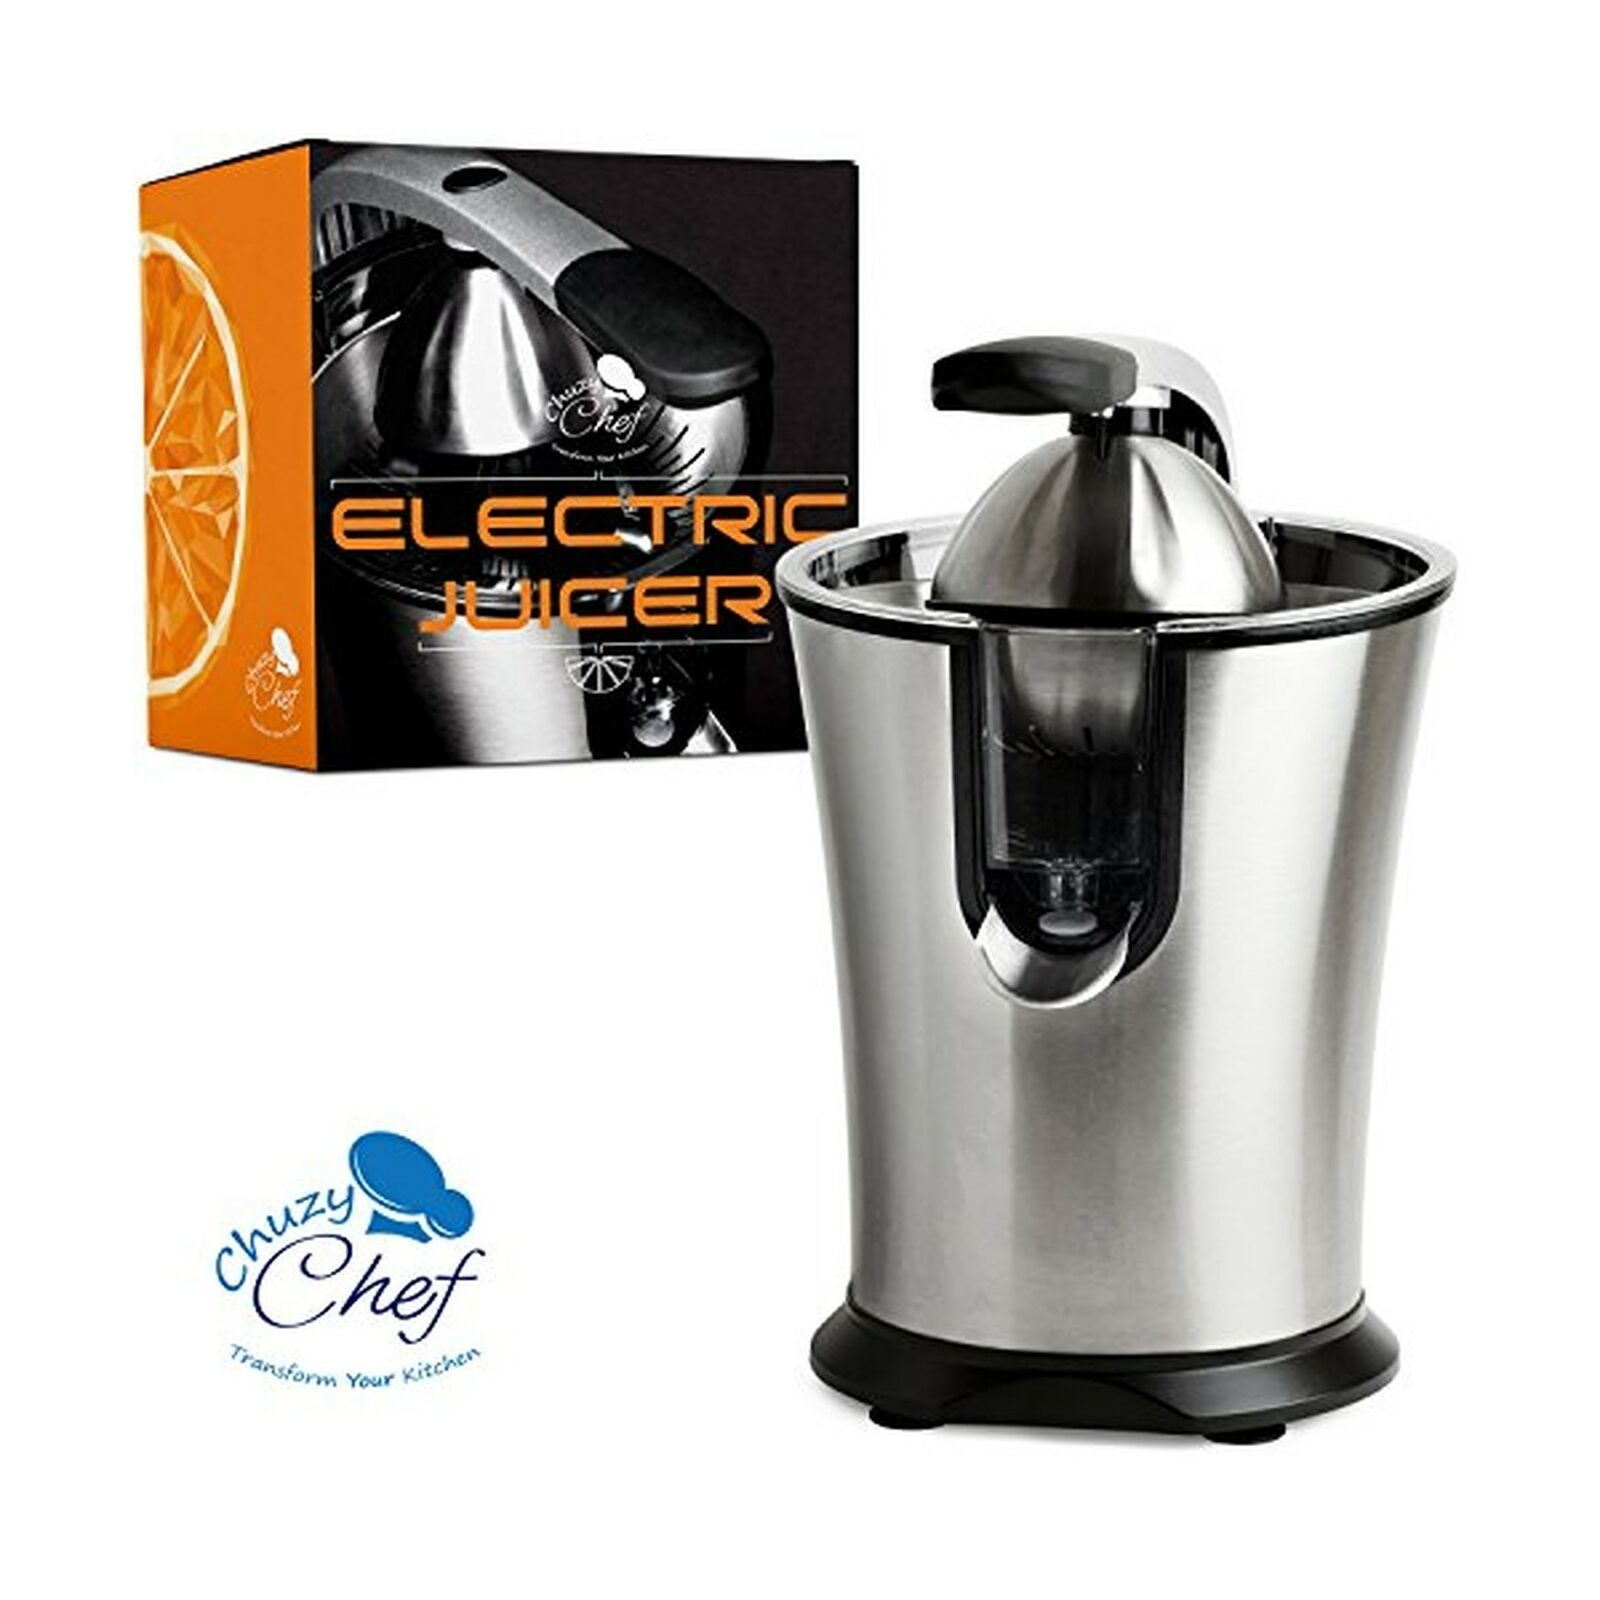 Stainless Steel Electric Citrus Juicer  Compact Lemon, Lime or orange Squeeze...